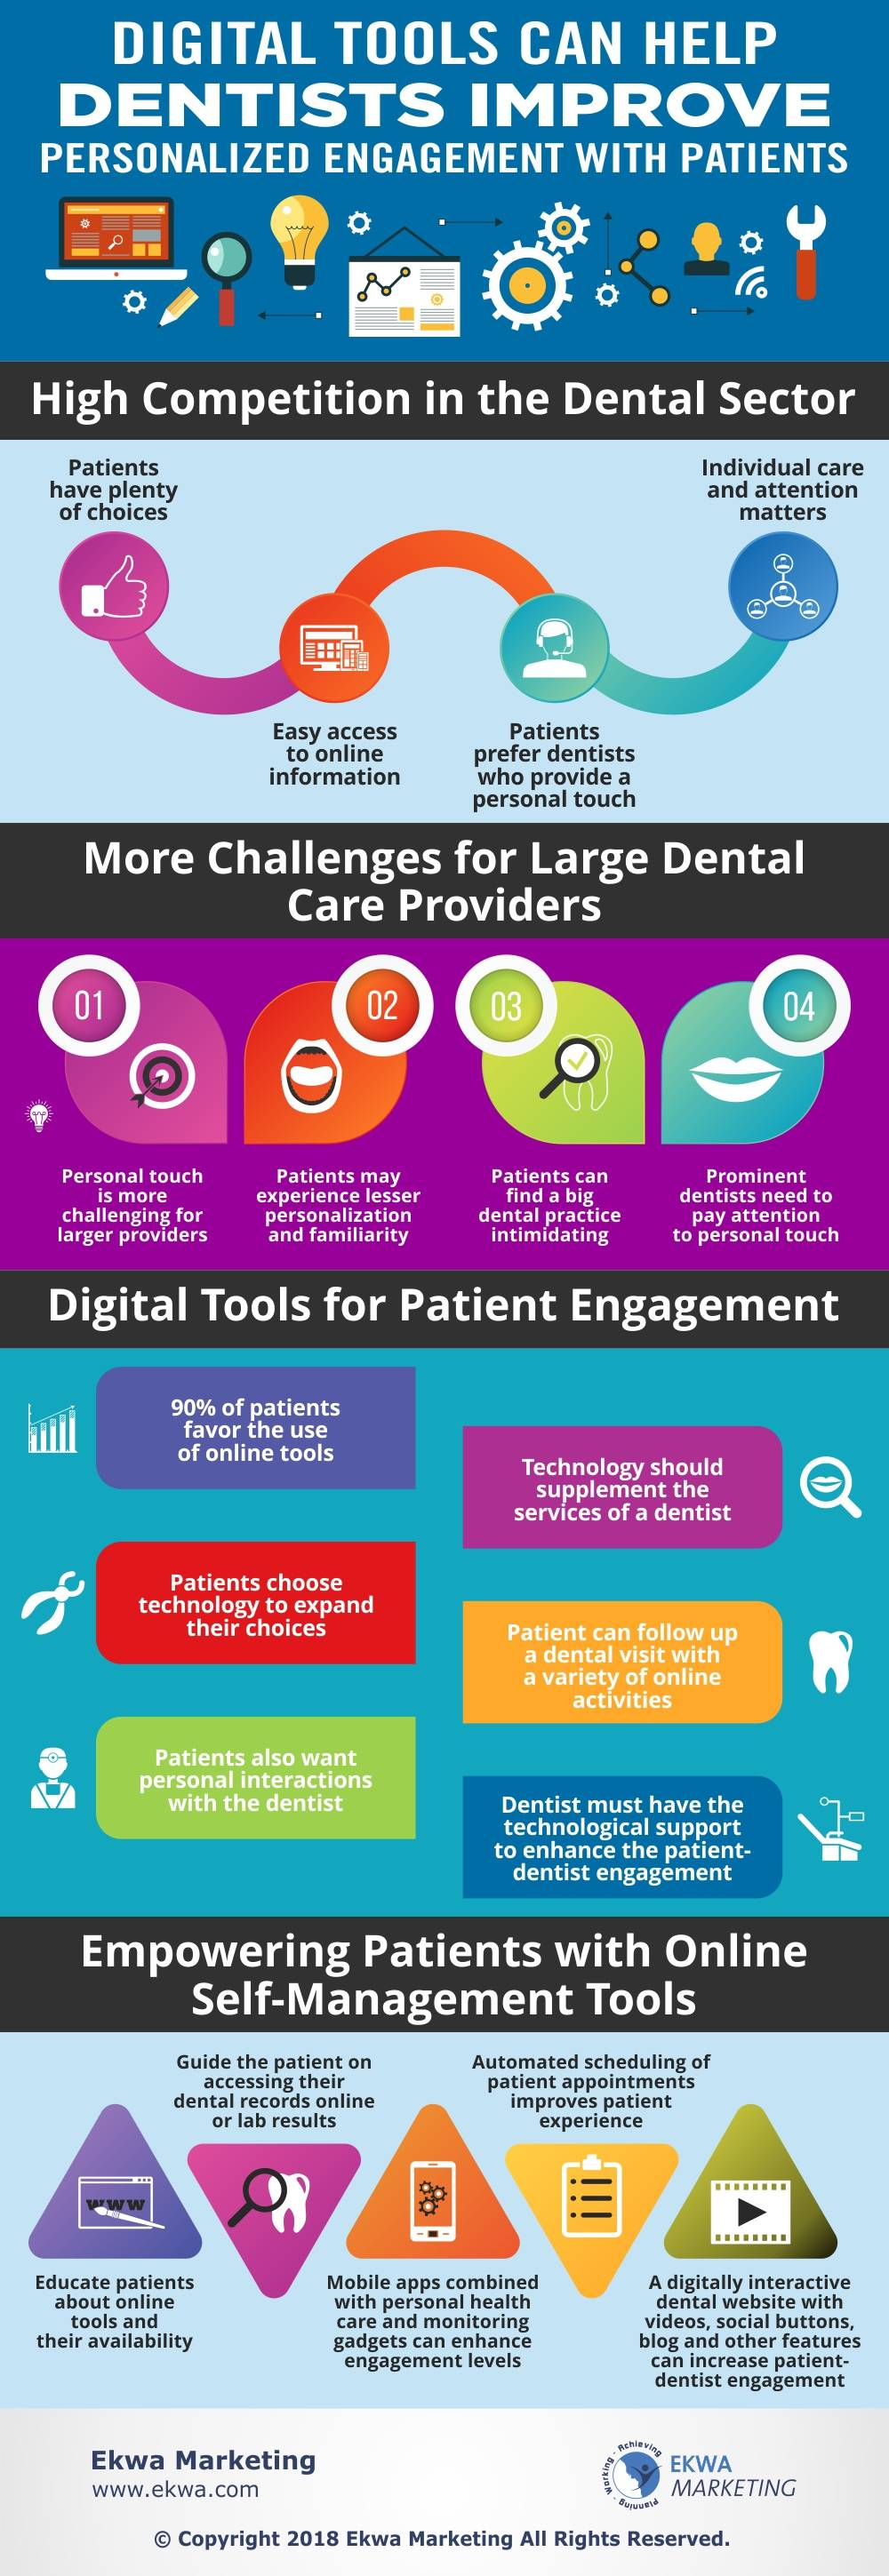 infographic of Improve Personalized Engagement With Patients